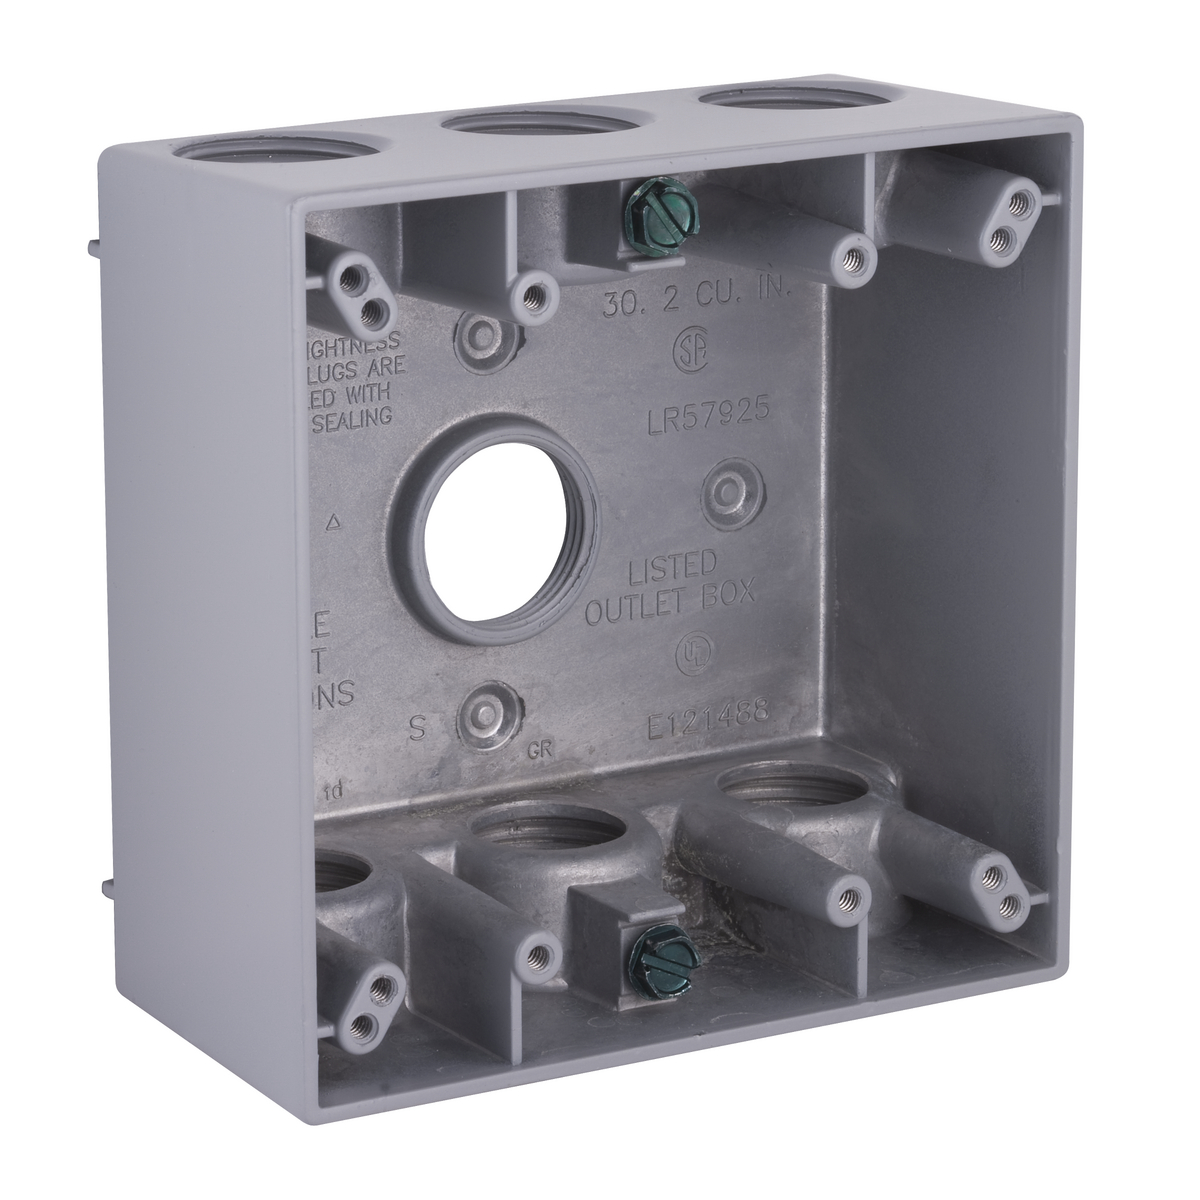 2G WP BOX (7) 3/4 IN. OUTLETS - GRAY